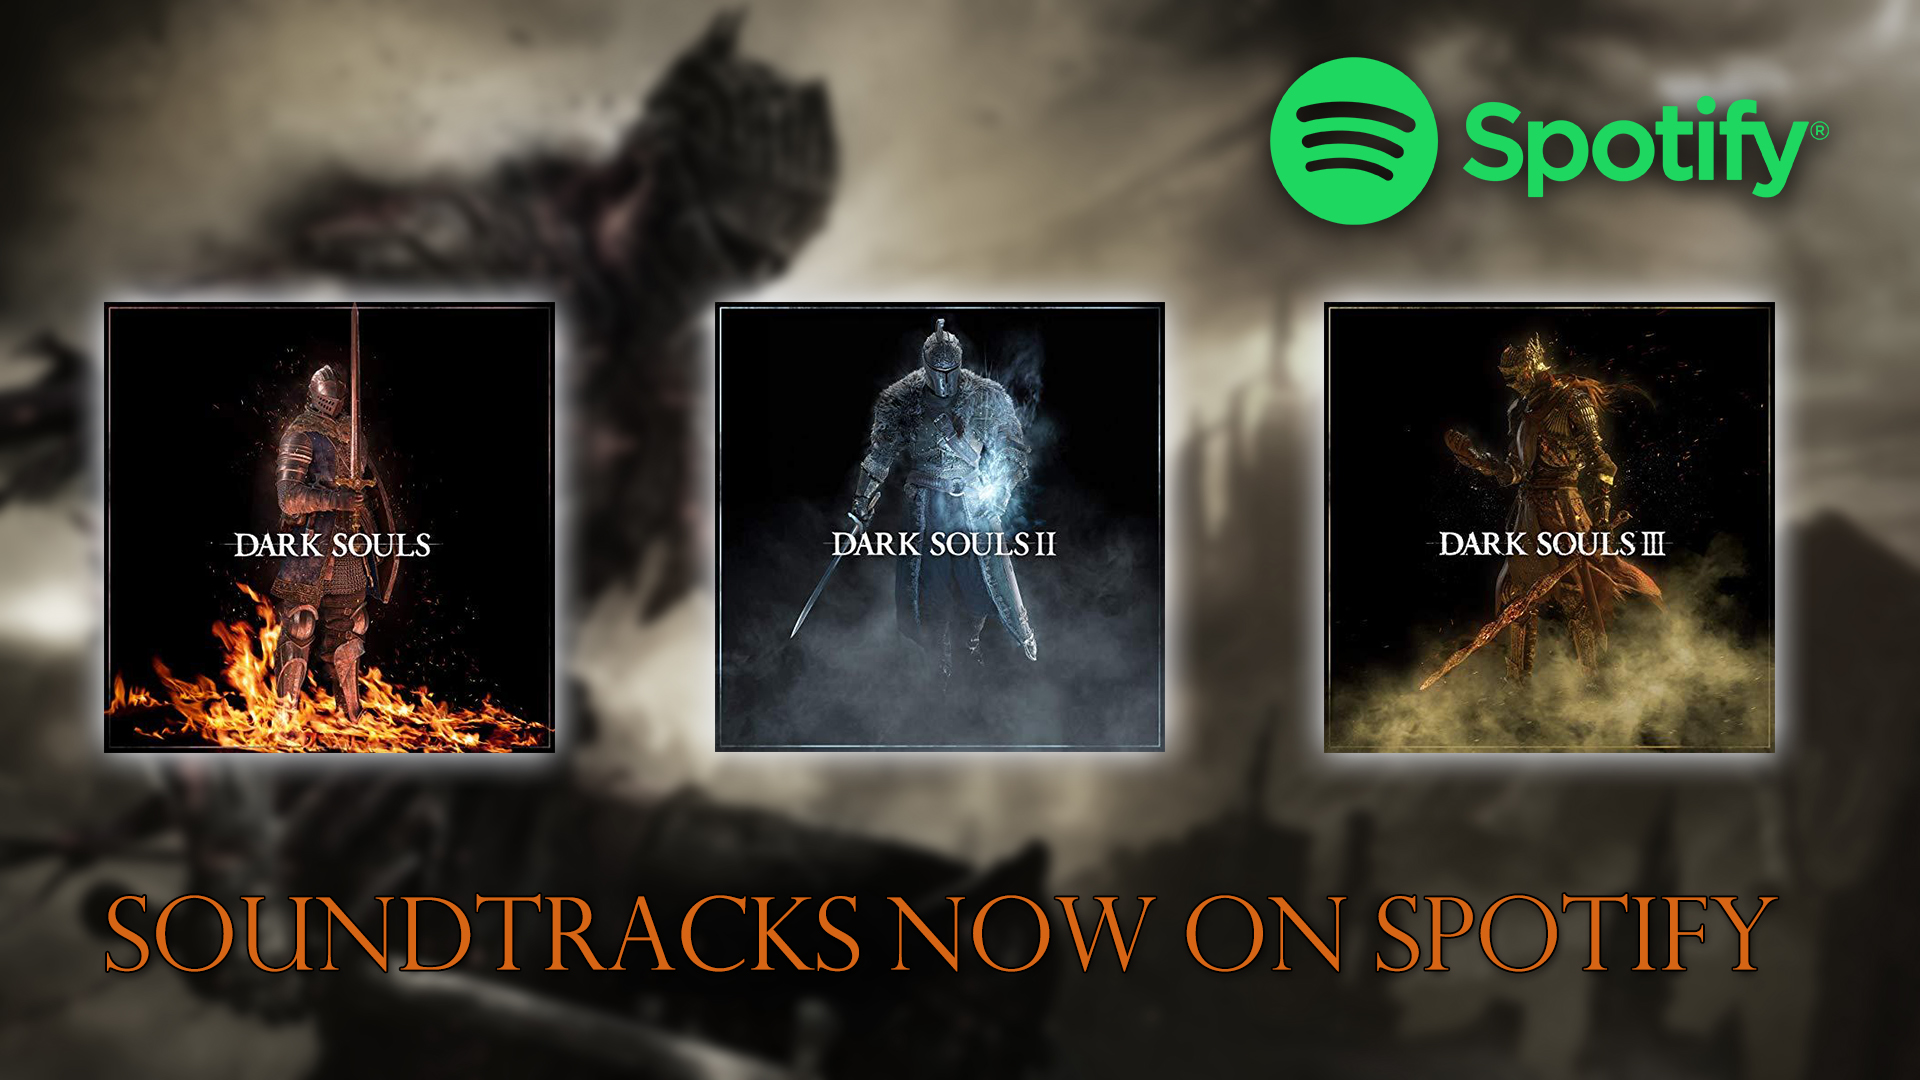 Find All Three Dark Souls Soundtracks Now on Spotify | Fextralife